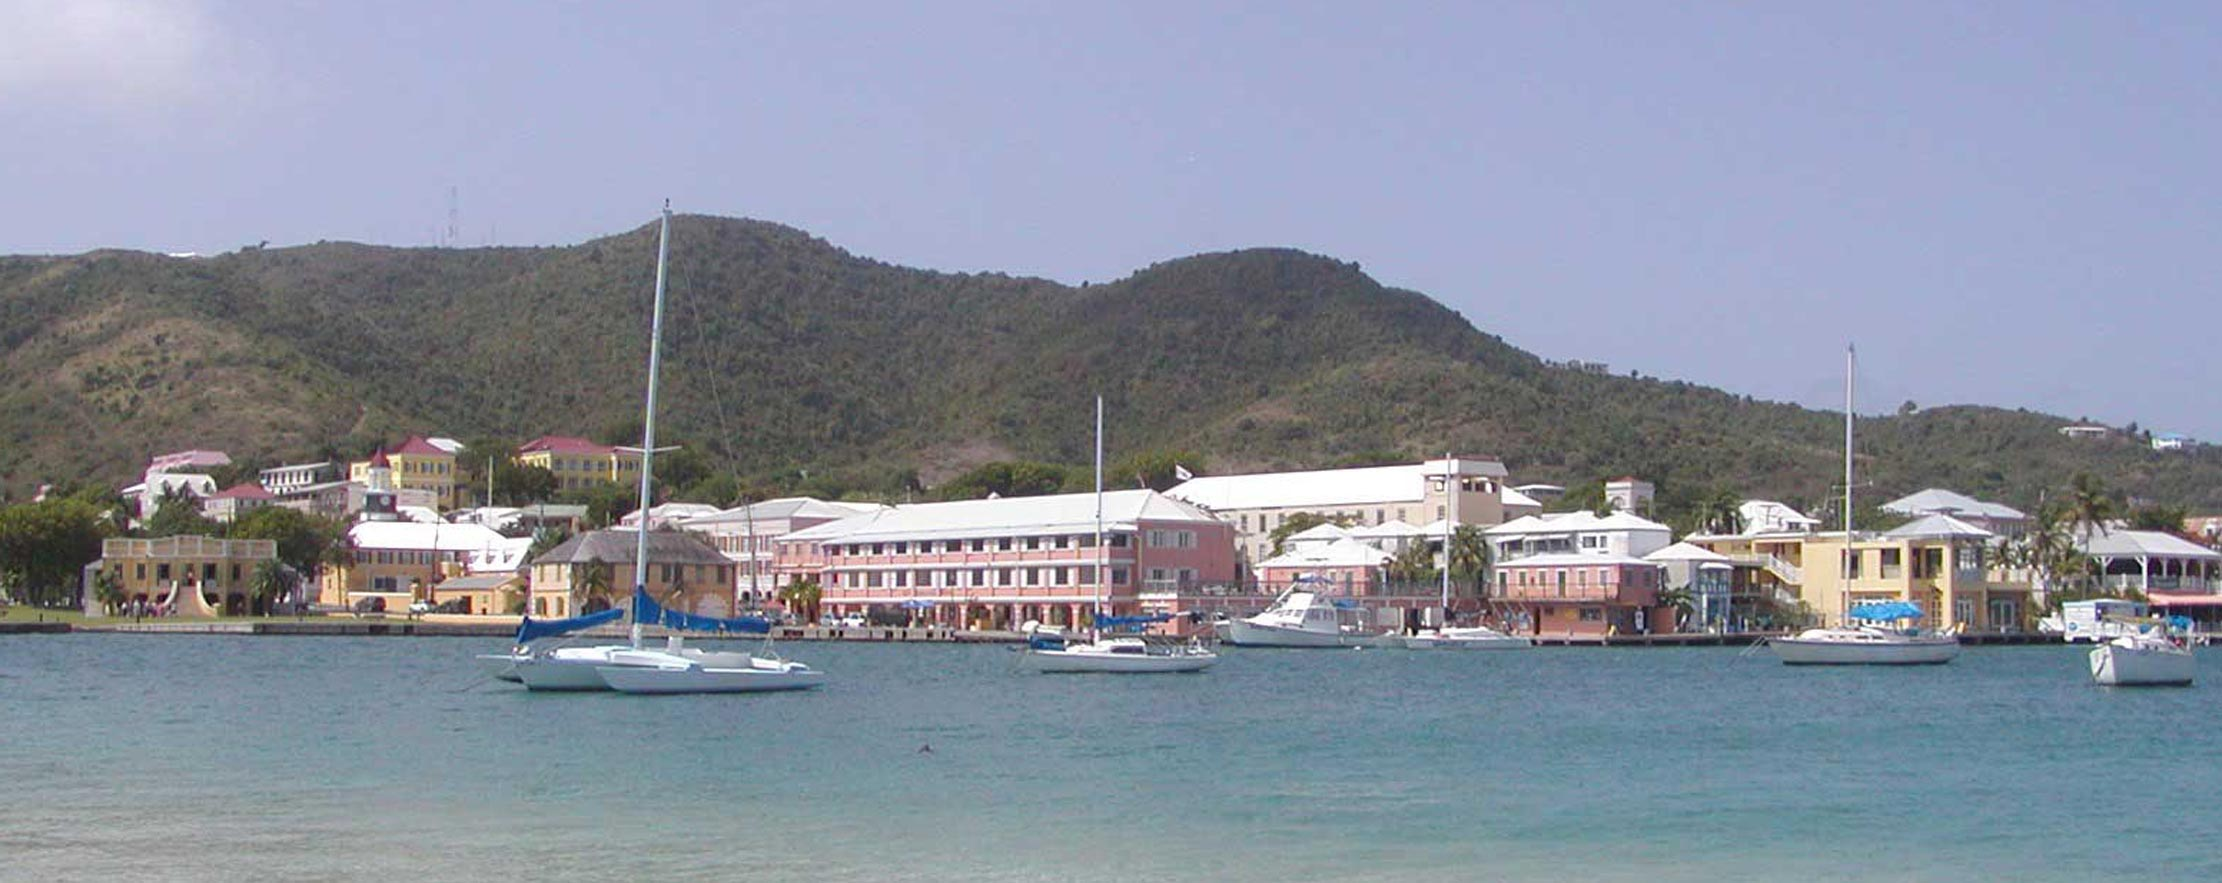 Christiansted Harbor, St. Croix, Virgin Islands